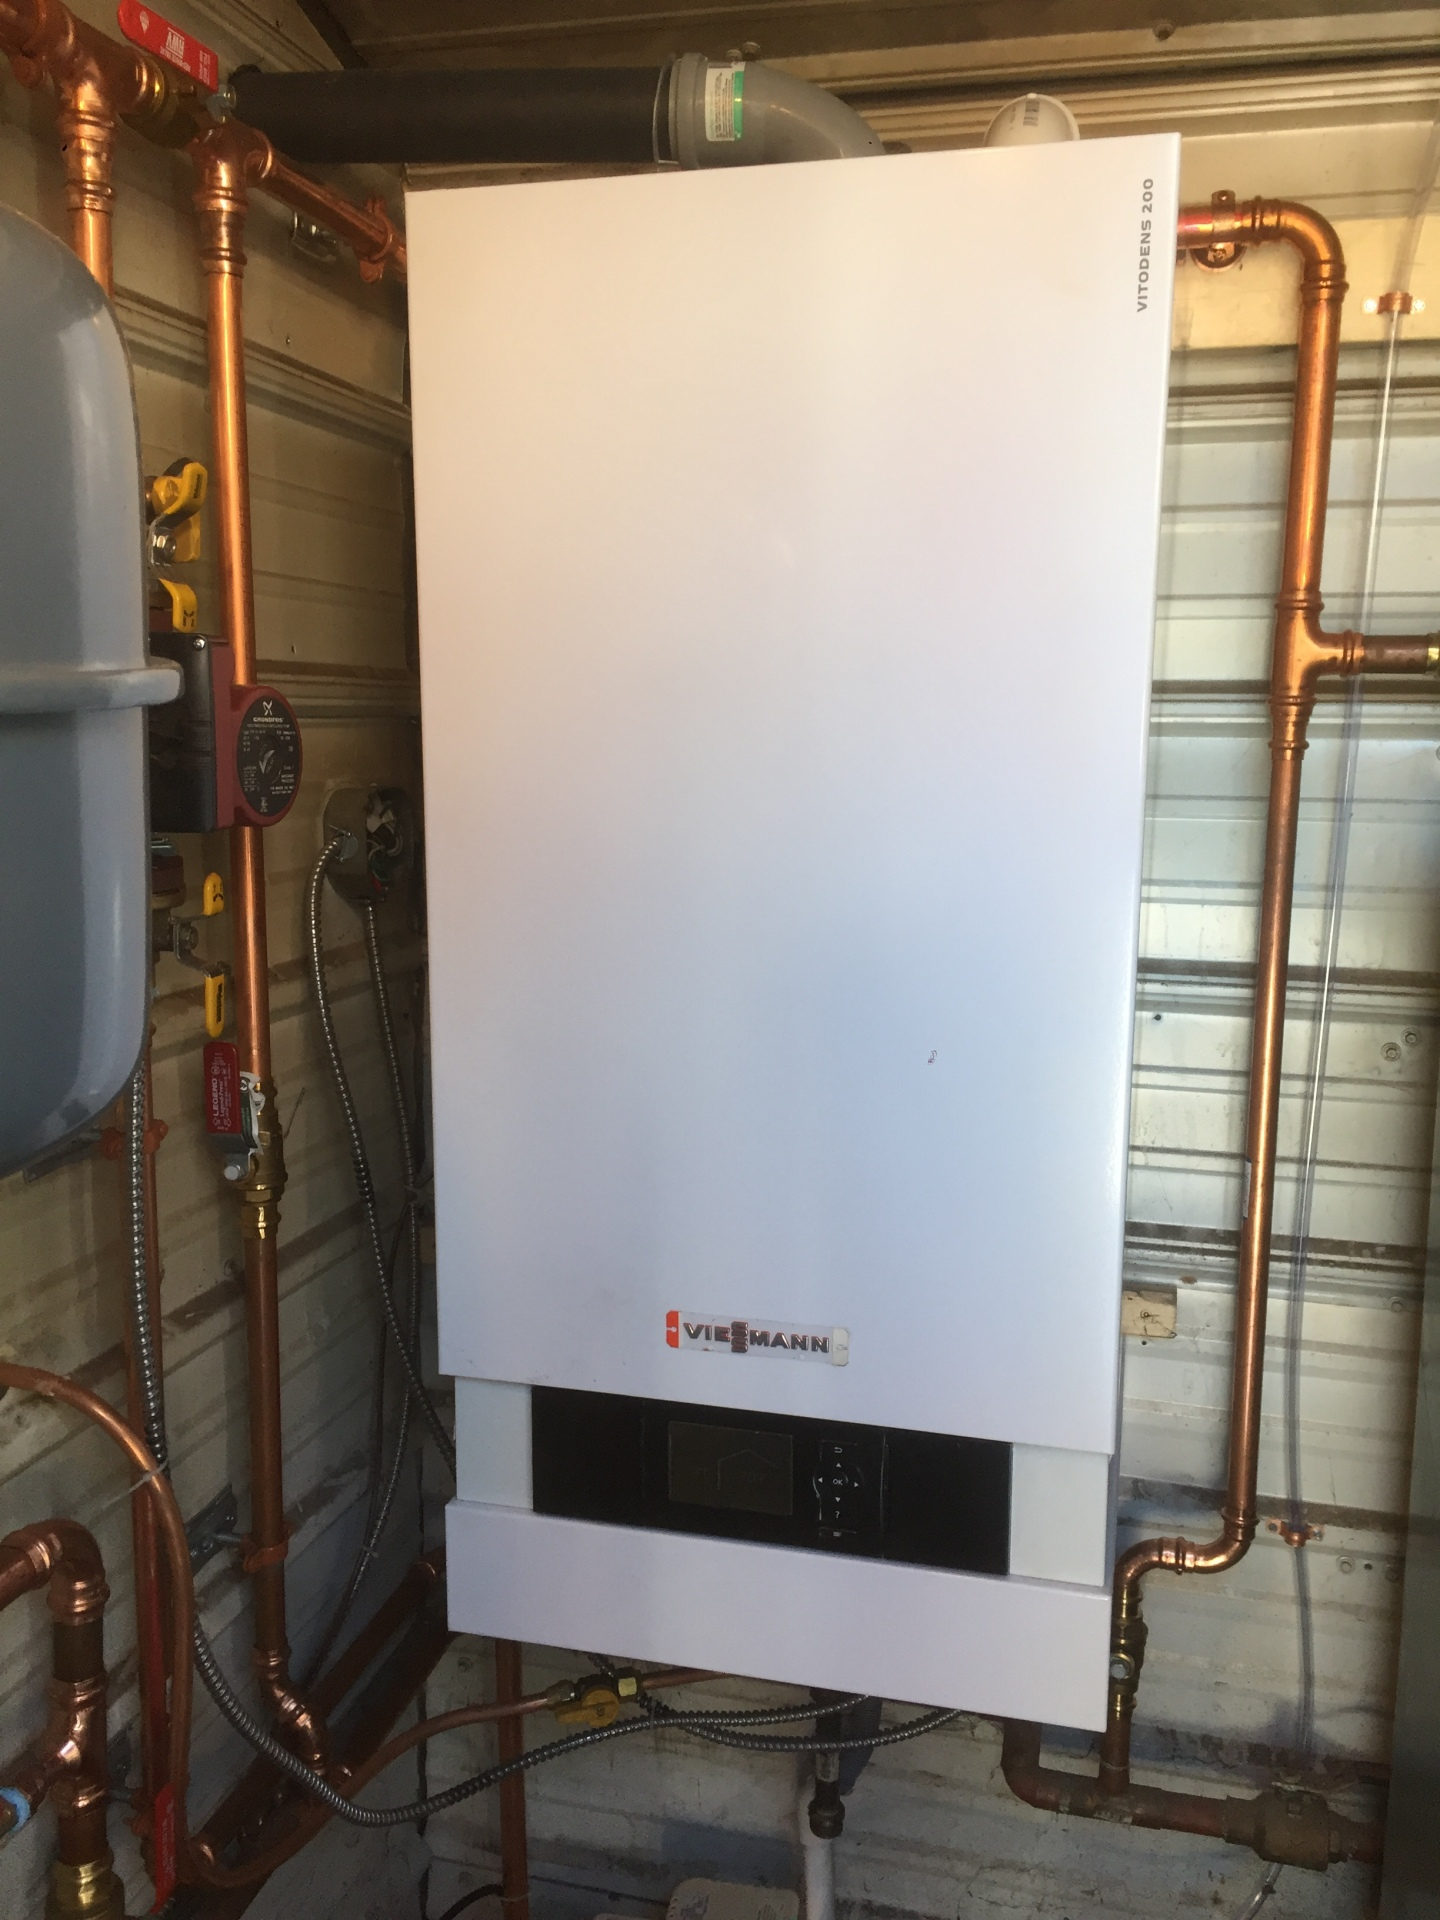 Viessmann Boiler for heating detached shop